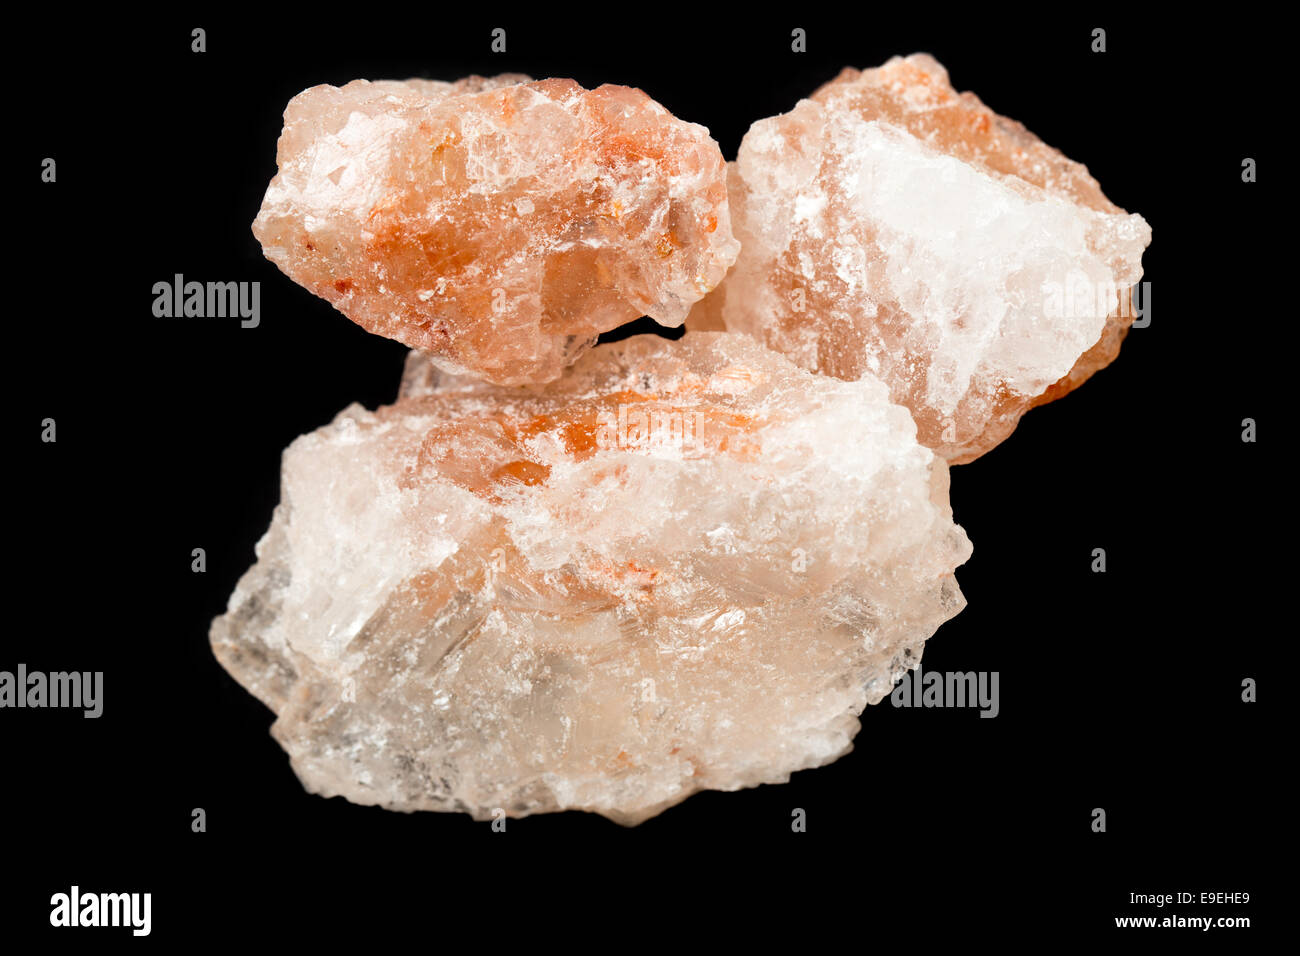 Crystalline Himalayan pink rock salt, a fashionable condiment, over a black background - Stock Image